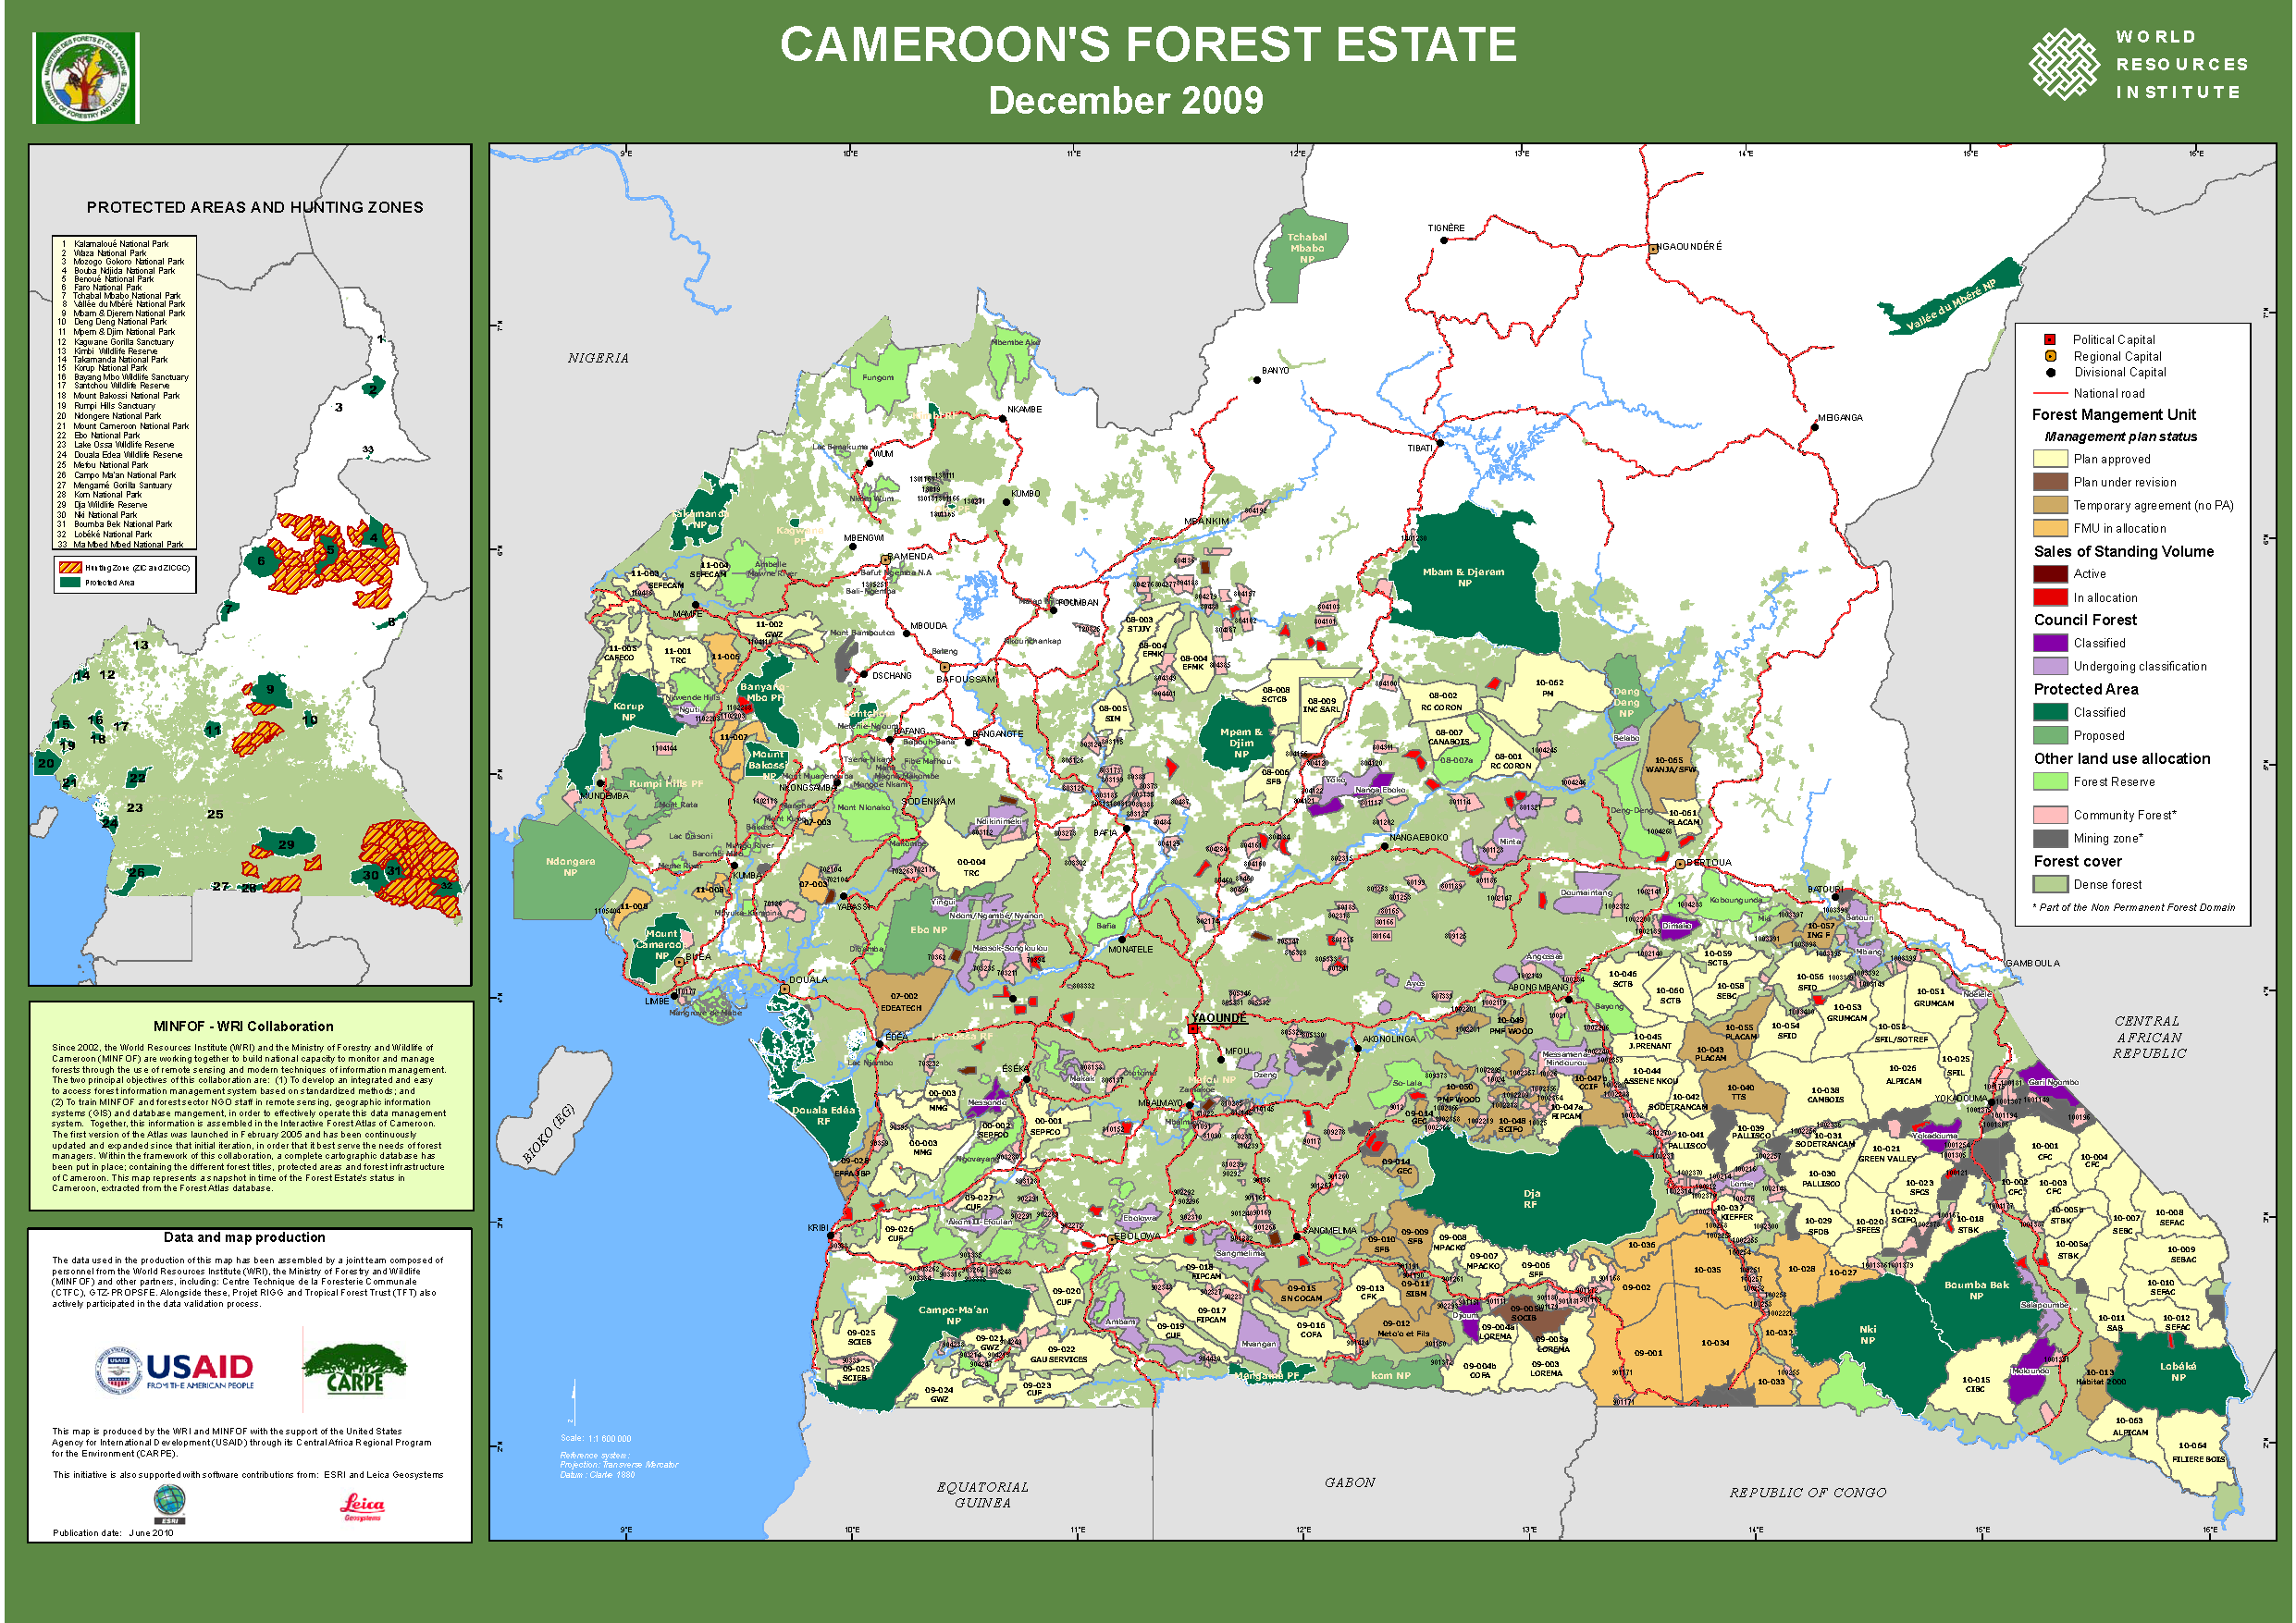 Cameroon: Forest Land Allocation 2009 | World Resources Institute